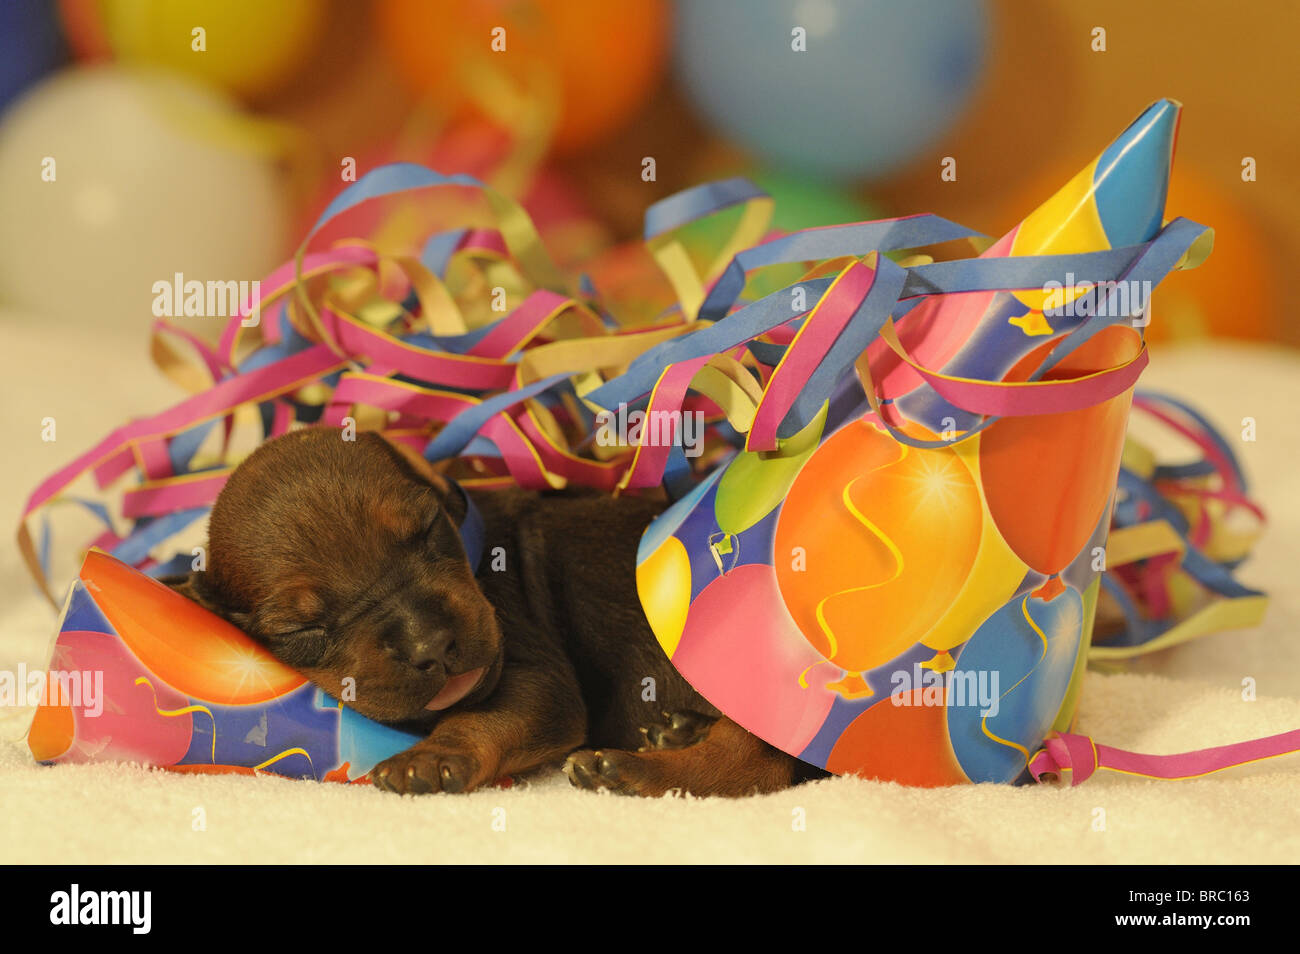 Rhodesian Ridgeback (Canis lupus familiaris). Puppy sleeping among paper streamers and multicolored little hats. - Stock Image